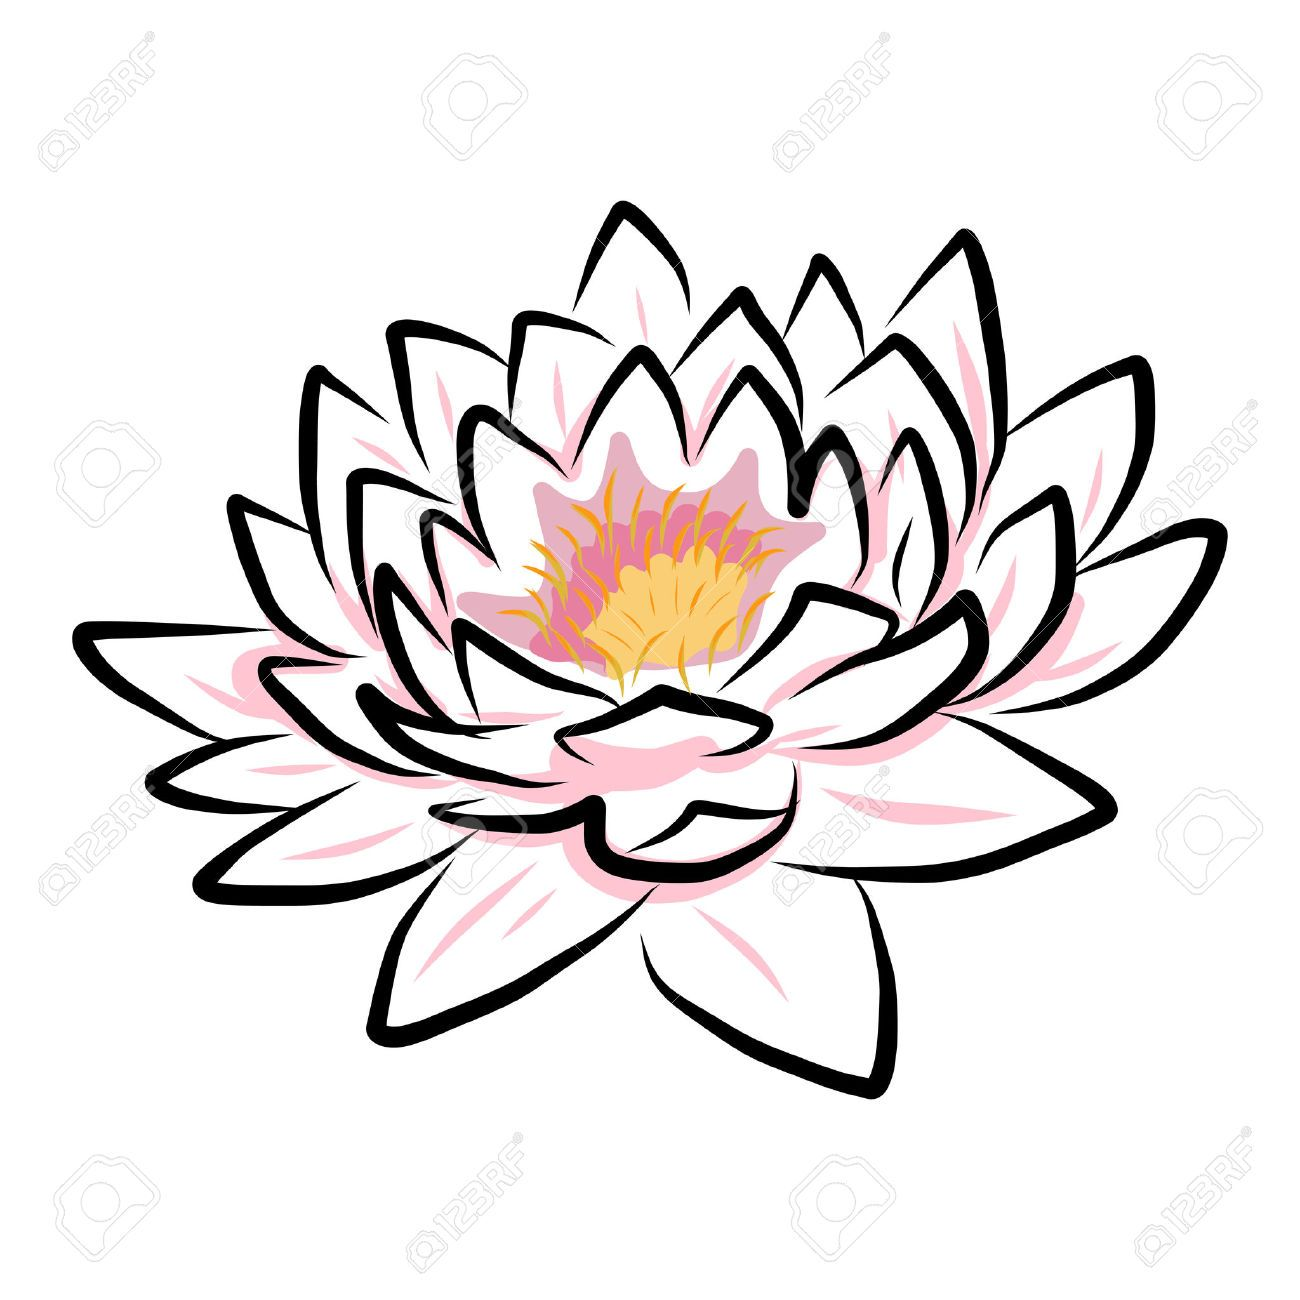 Blue lotus flower drawing at getdrawings free for personal use 1300x1300 23864476 hand drawing water lily lotus flower vector eps10 stock izmirmasajfo